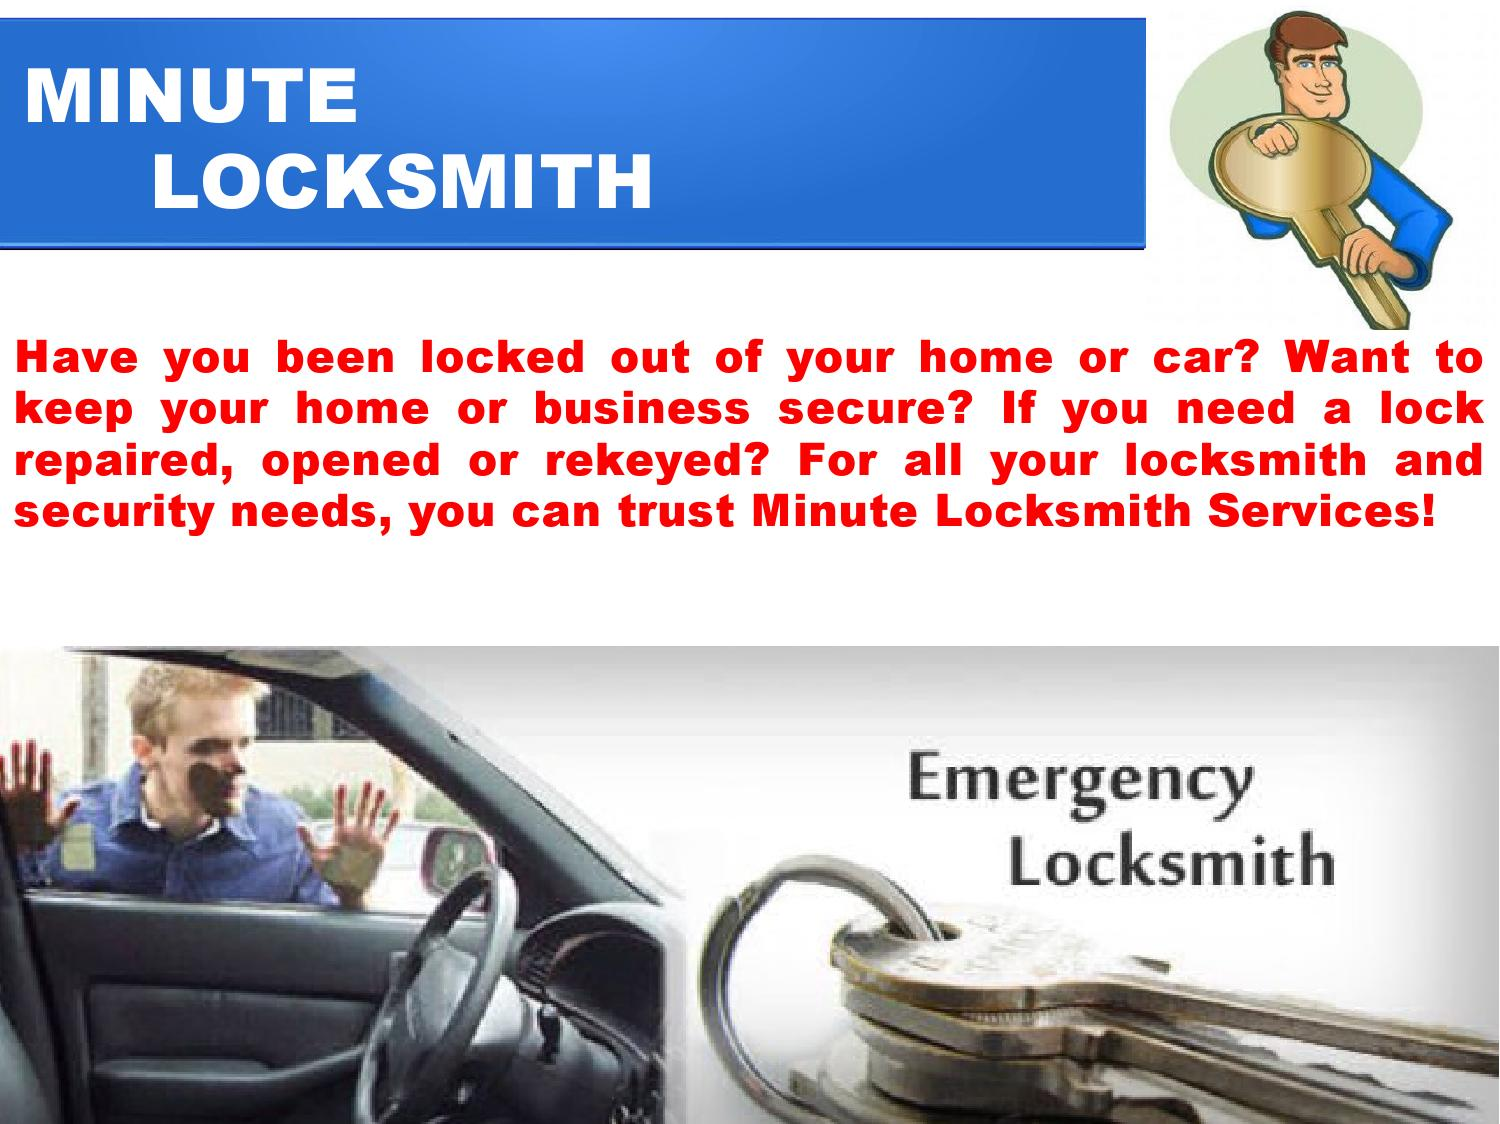 24 hour emergency locksmith services in kitchener waterloo by Minute ...